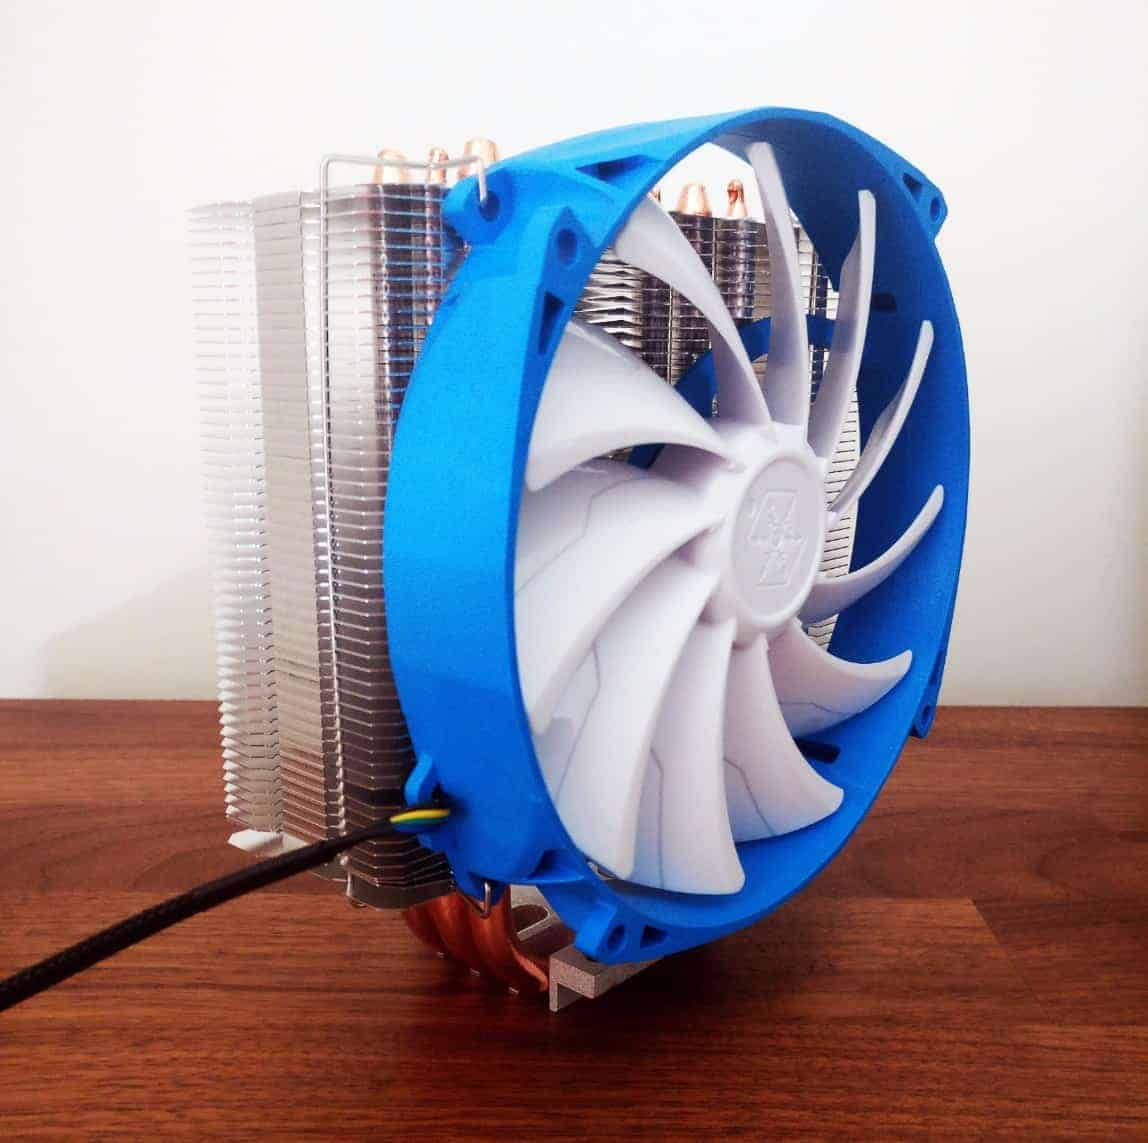 Silverstone-AR07-Photos39 Silverstone Argon AR07 CPU Cooler Review